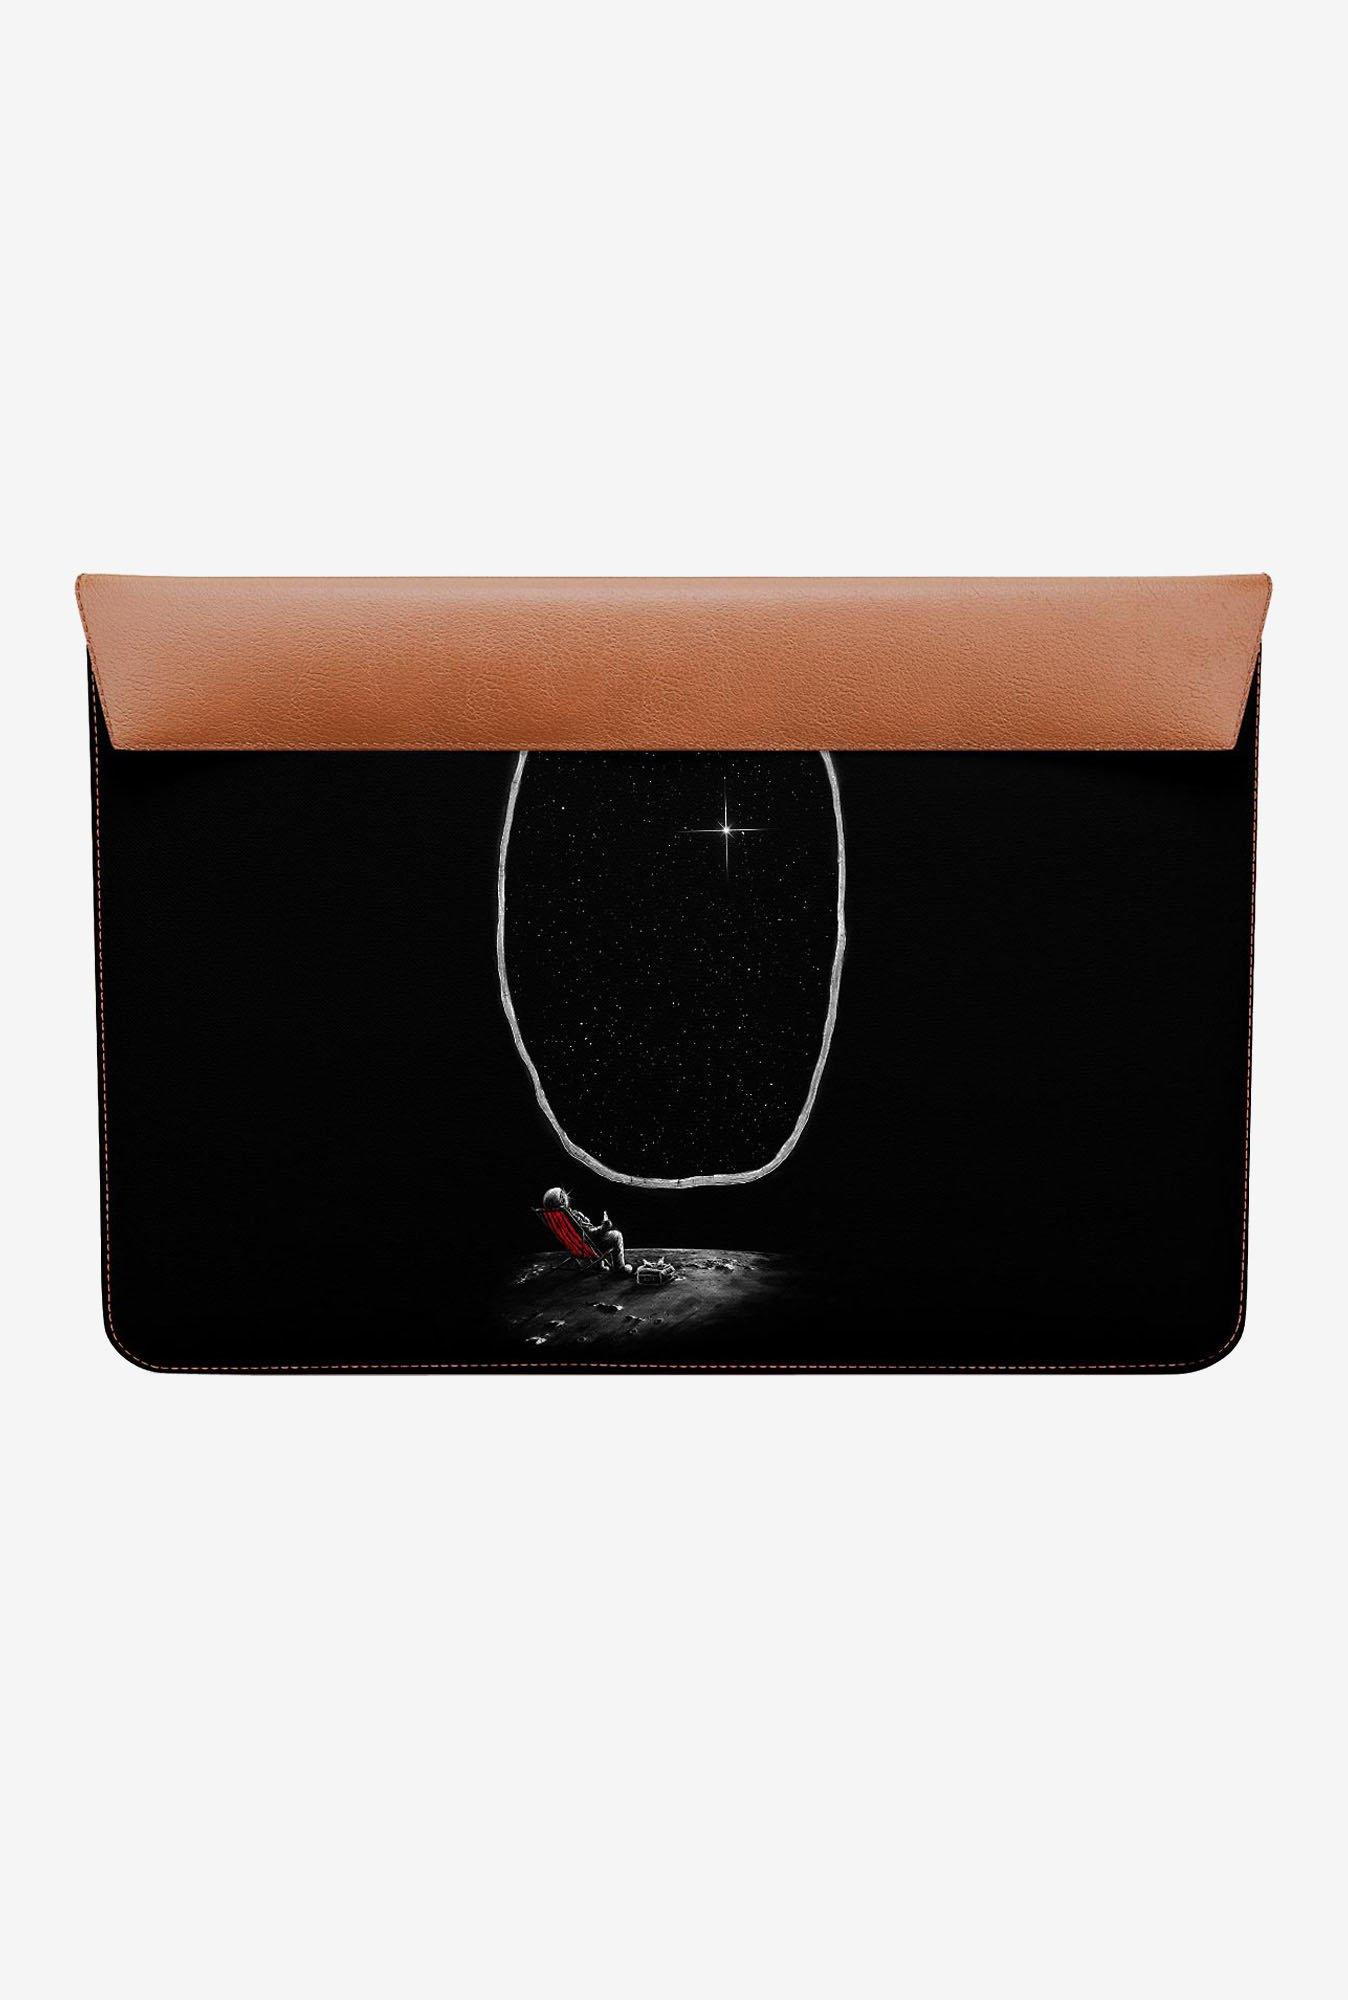 DailyObjects Space Chill MacBook 12 Envelope Sleeve